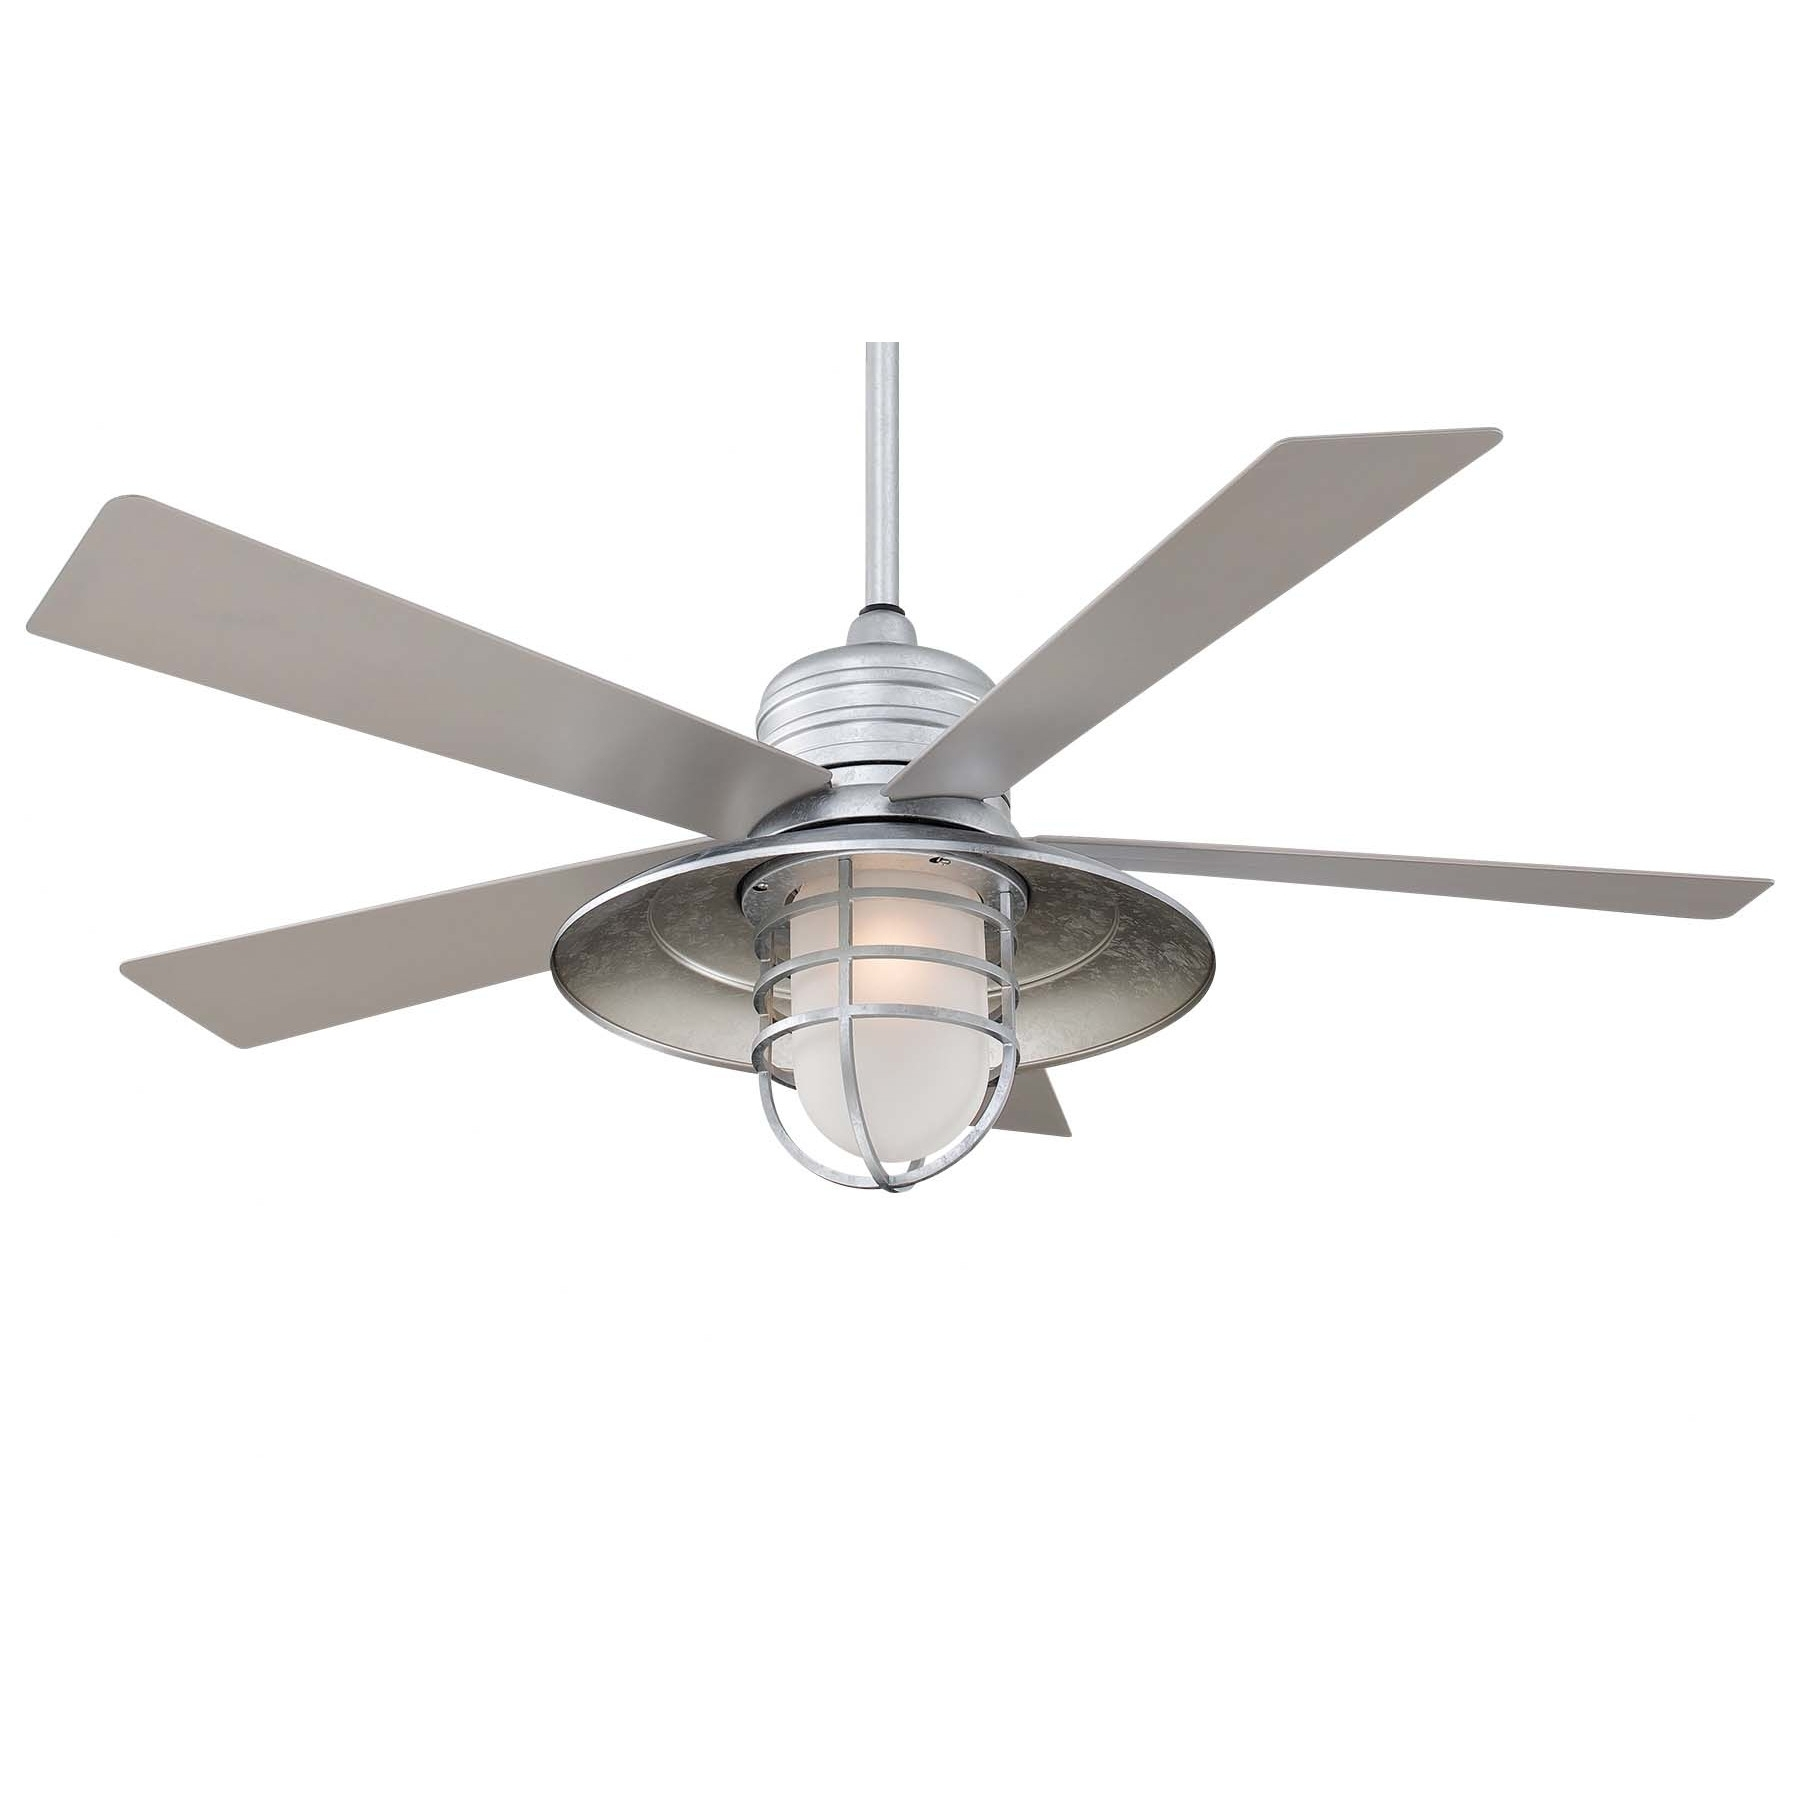 Well Known 42 Wayfair Ceiling Fans, Minka Aire 54Quot; Rainman 5 Blade Indoor Intended For Wayfair Outdoor Ceiling Fans With Lights (View 18 of 20)